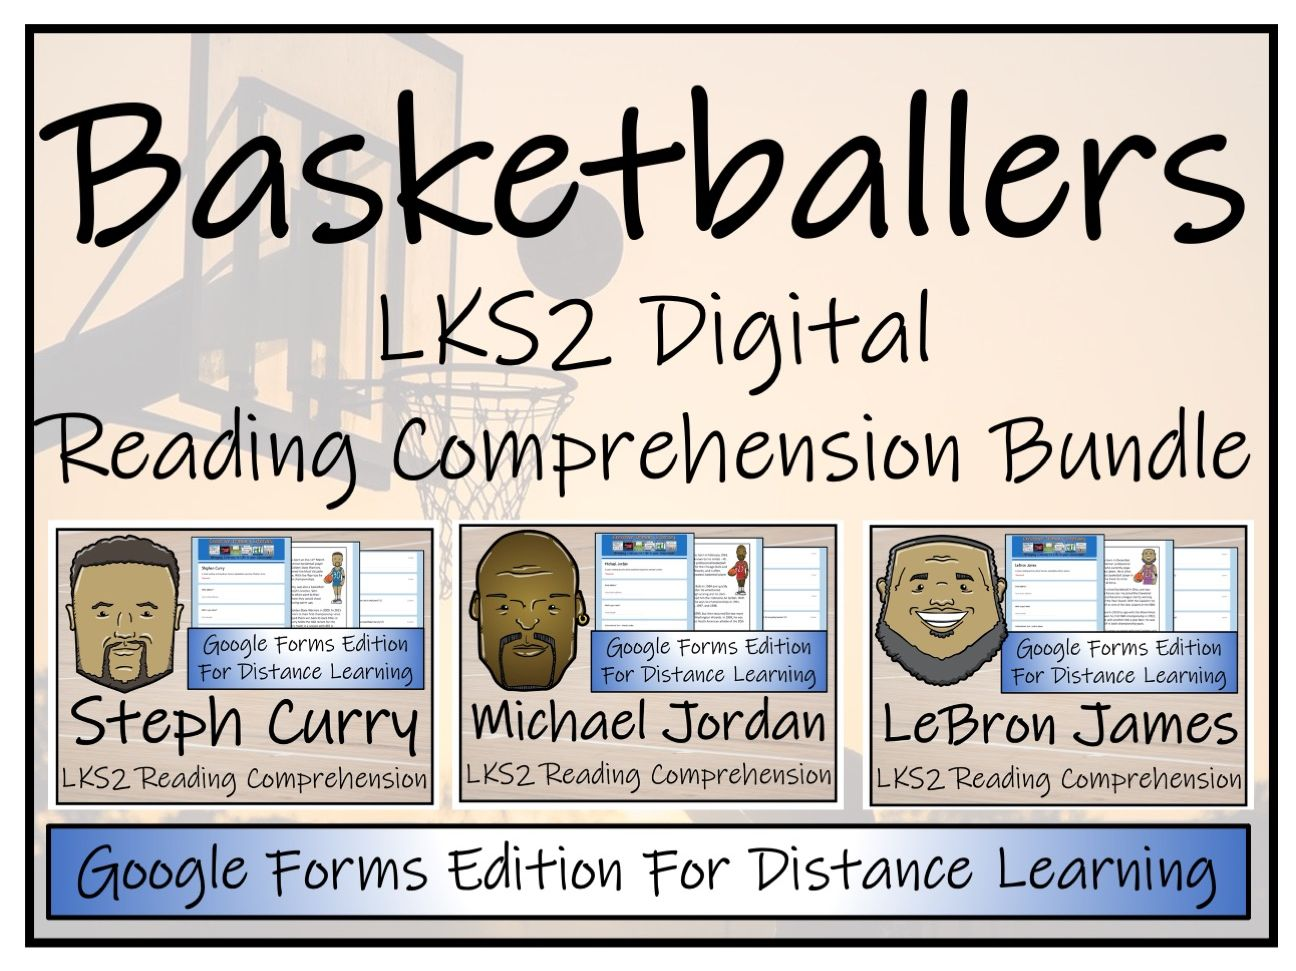 LKS2 Basketball Players Reading Comprehension & Distance Learning Bundle